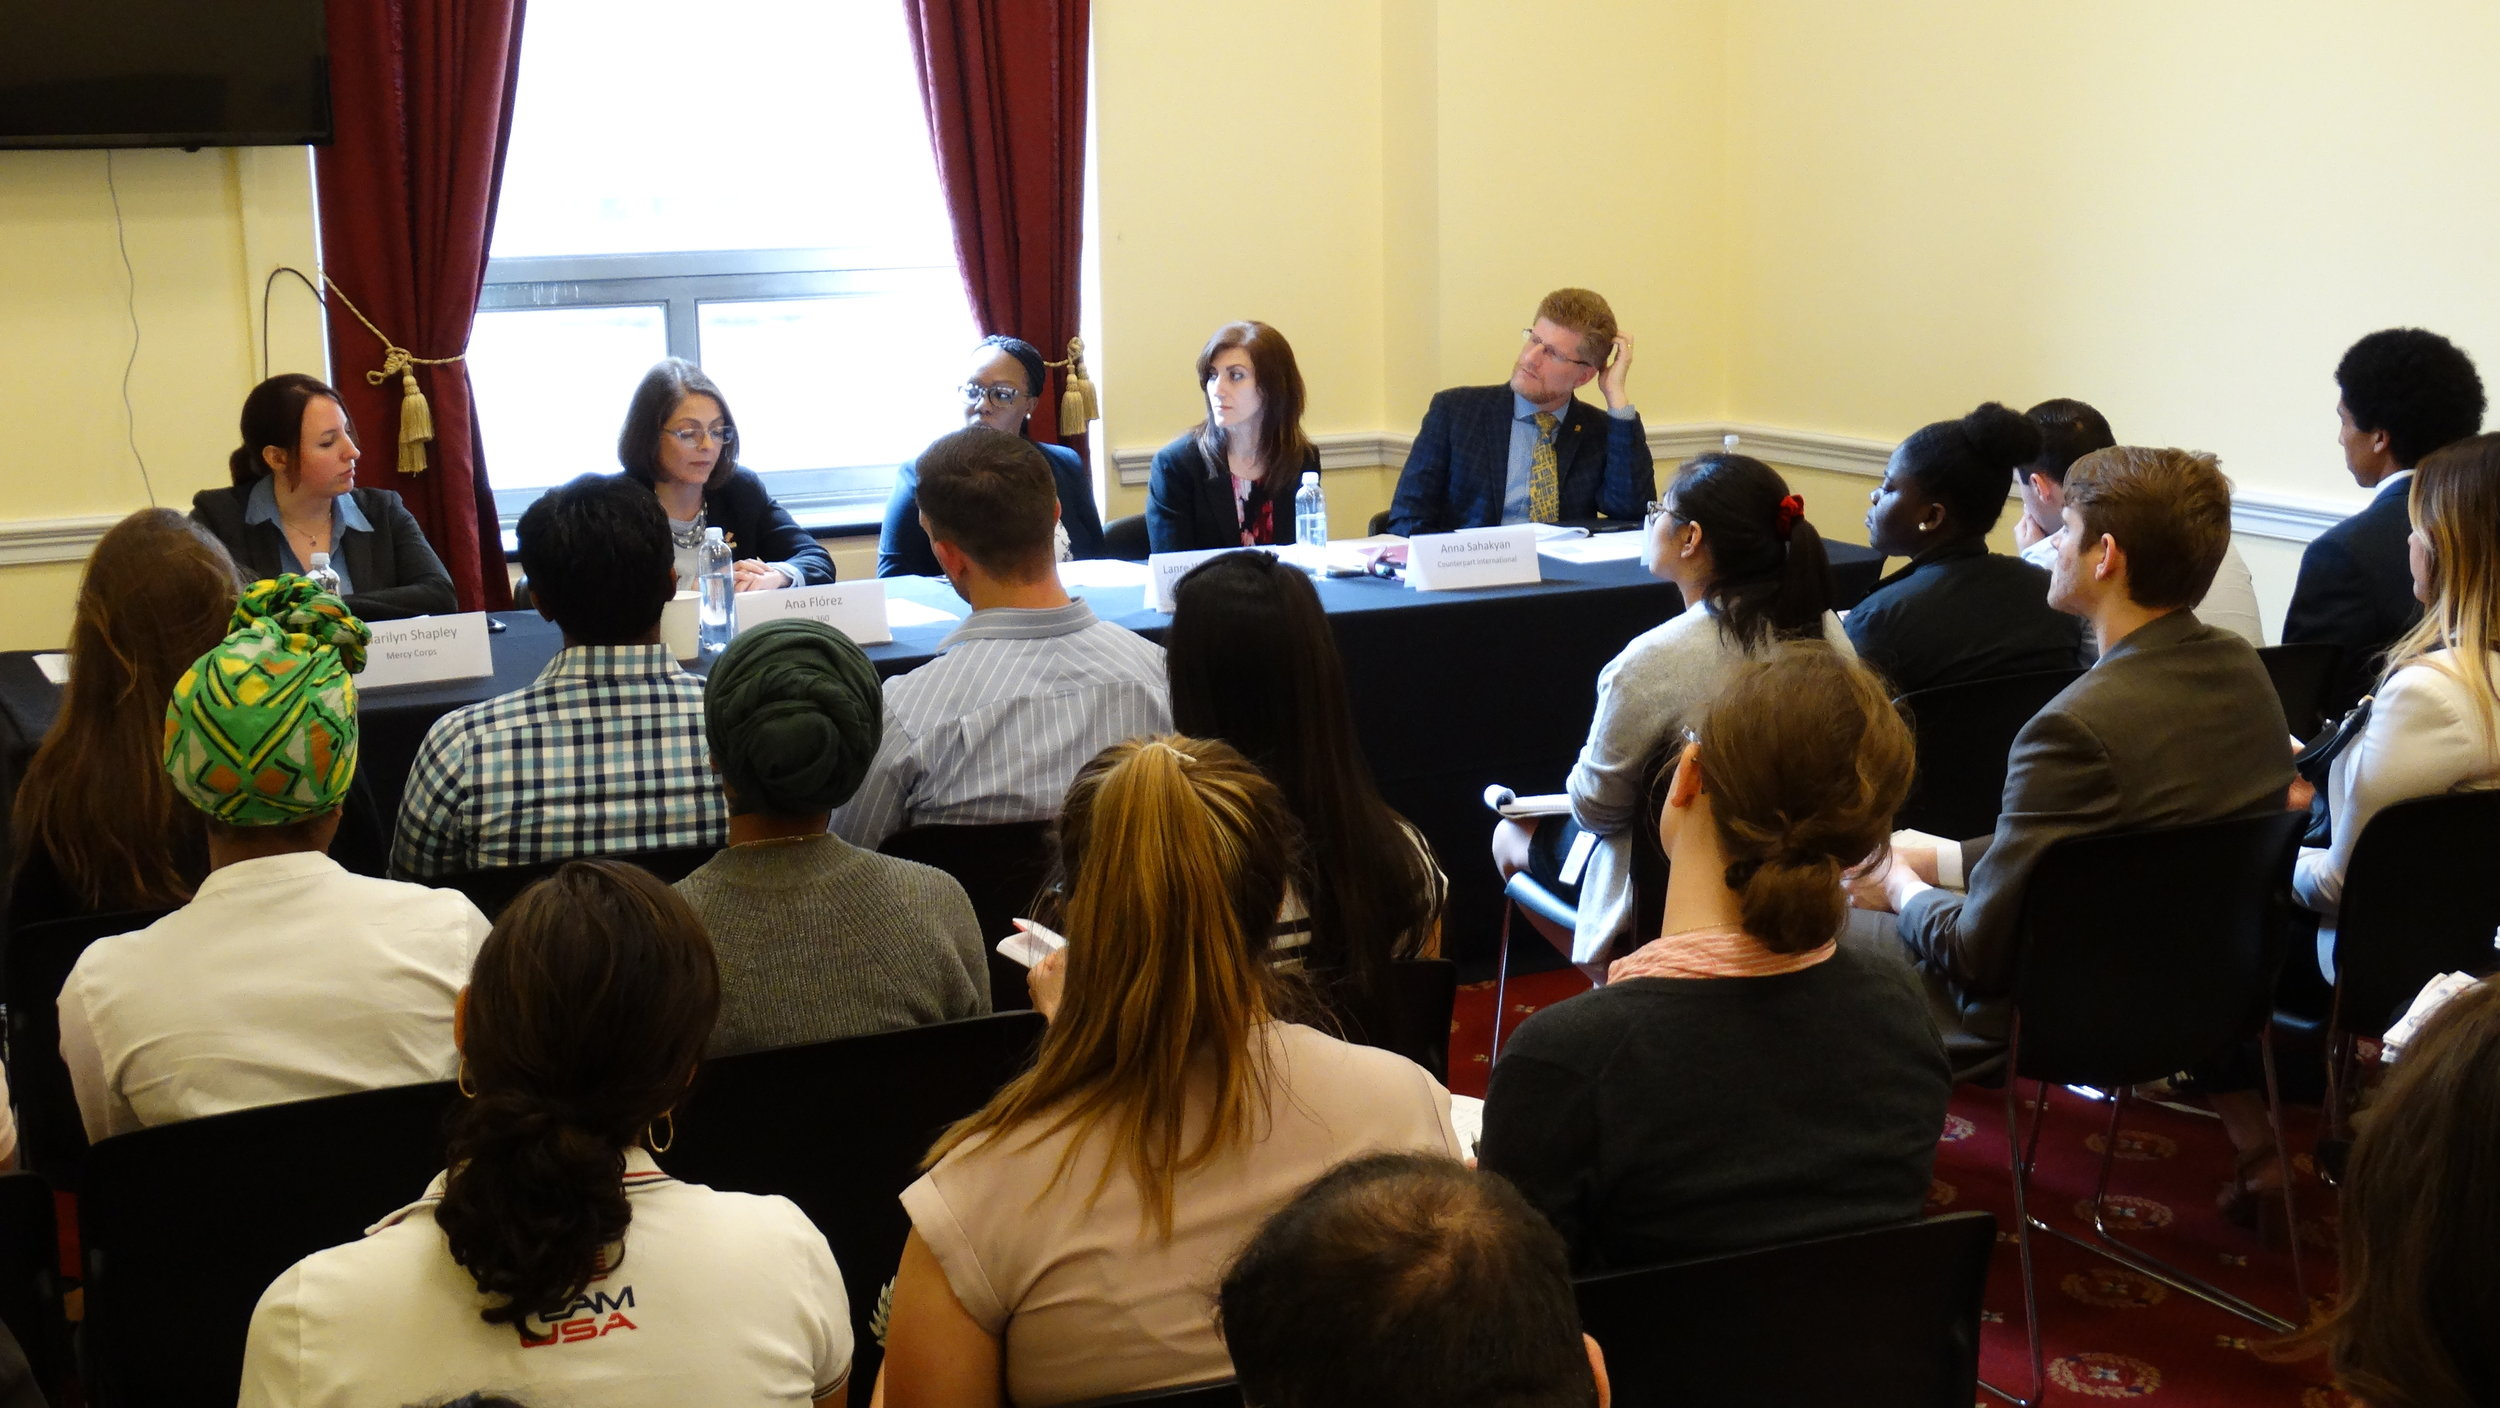 Above: Expert panel speaks to a packed room at briefing on aid in Northern Triangle